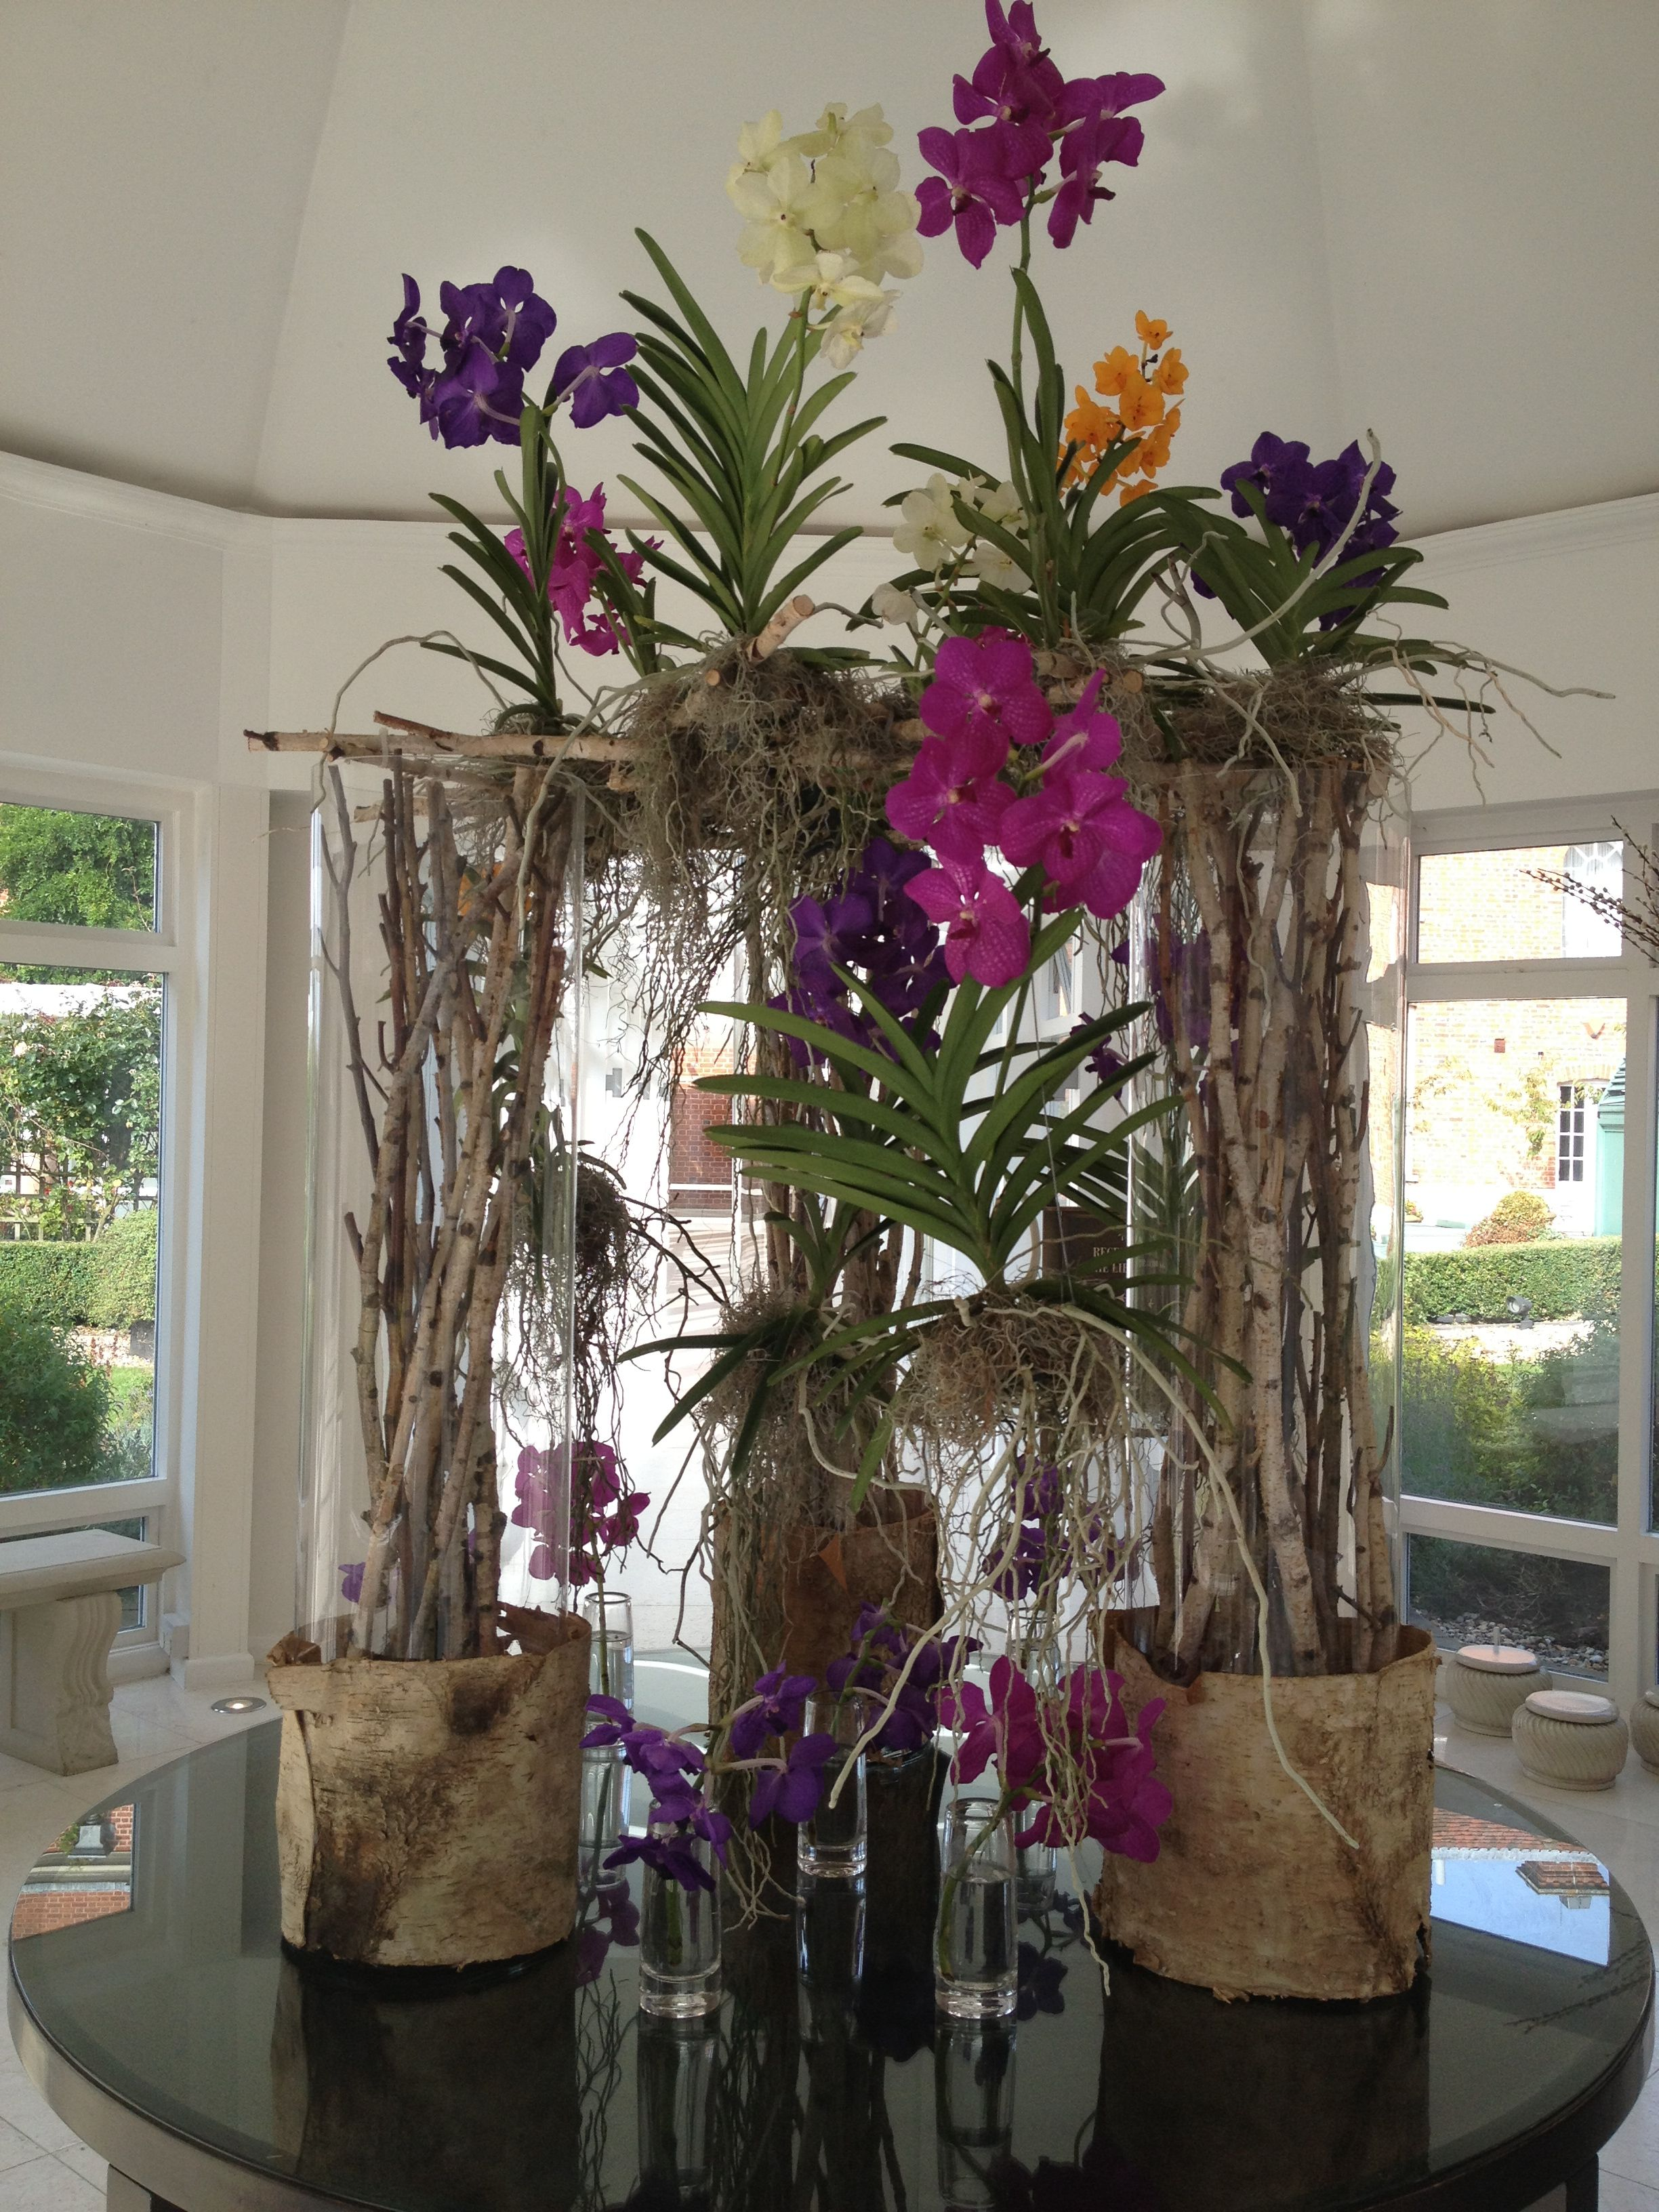 A Beautiful Orchid Display In The Glass Link Courtesy Of